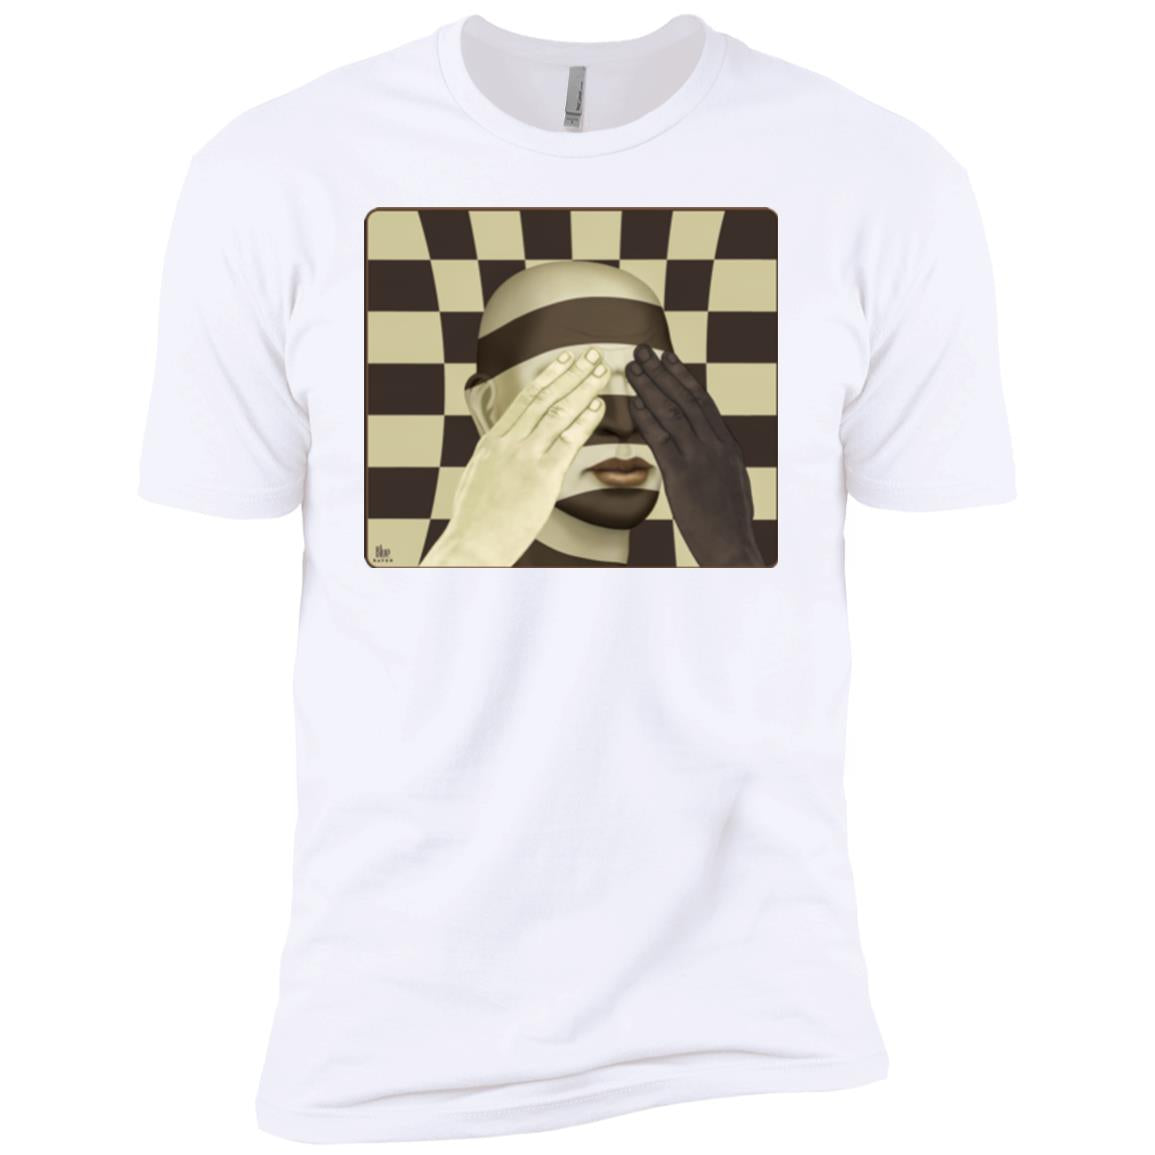 color blind - Men's Premium Fitted T-Shirt